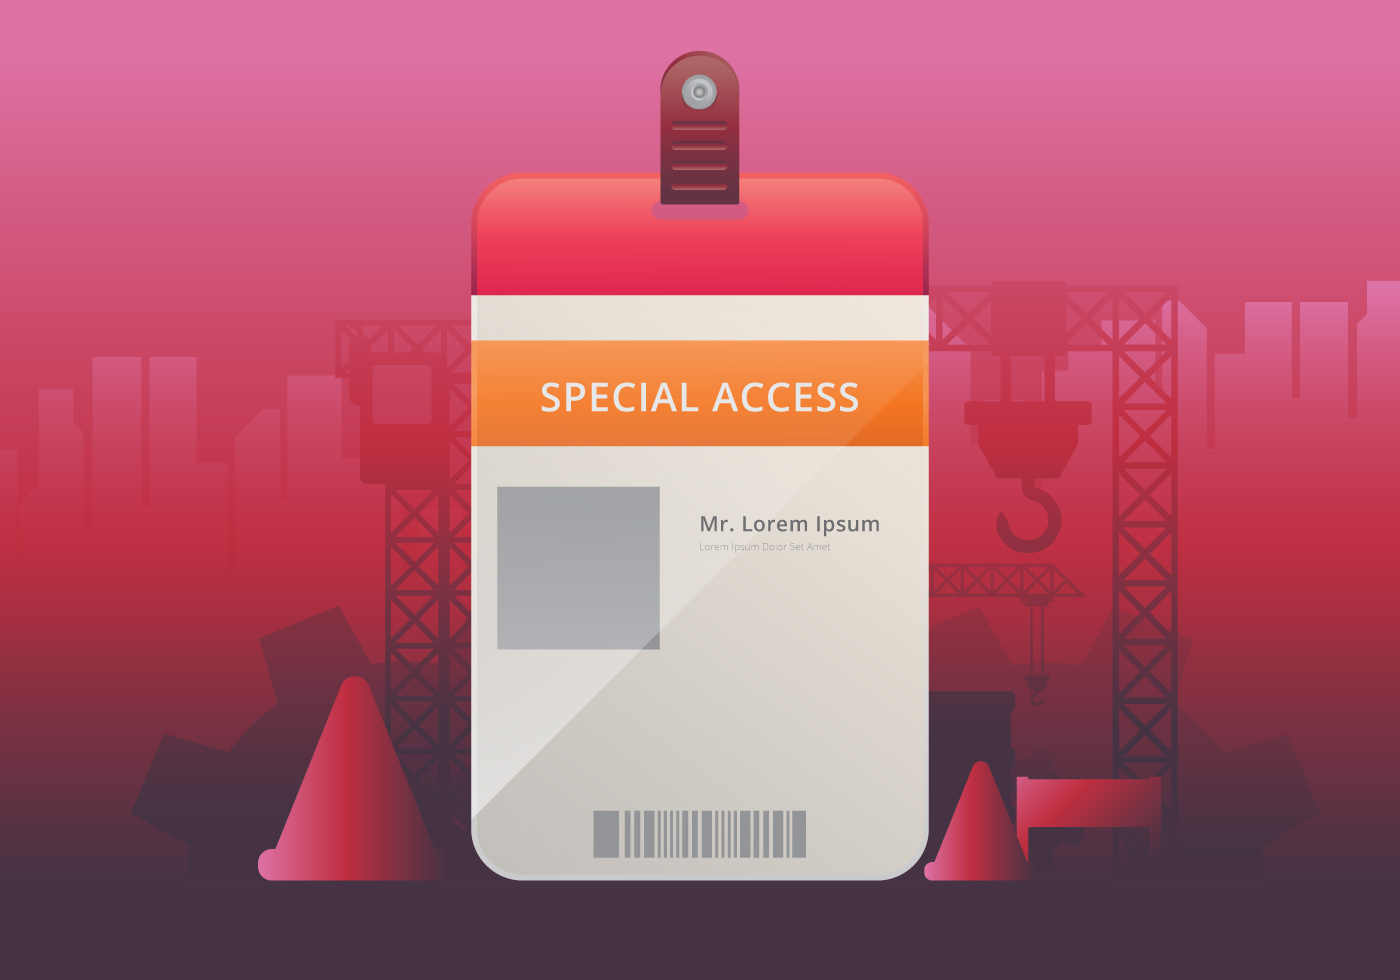 009 Rare Blank Id Card Template Highest Clarity  Design Free Download EditableFull